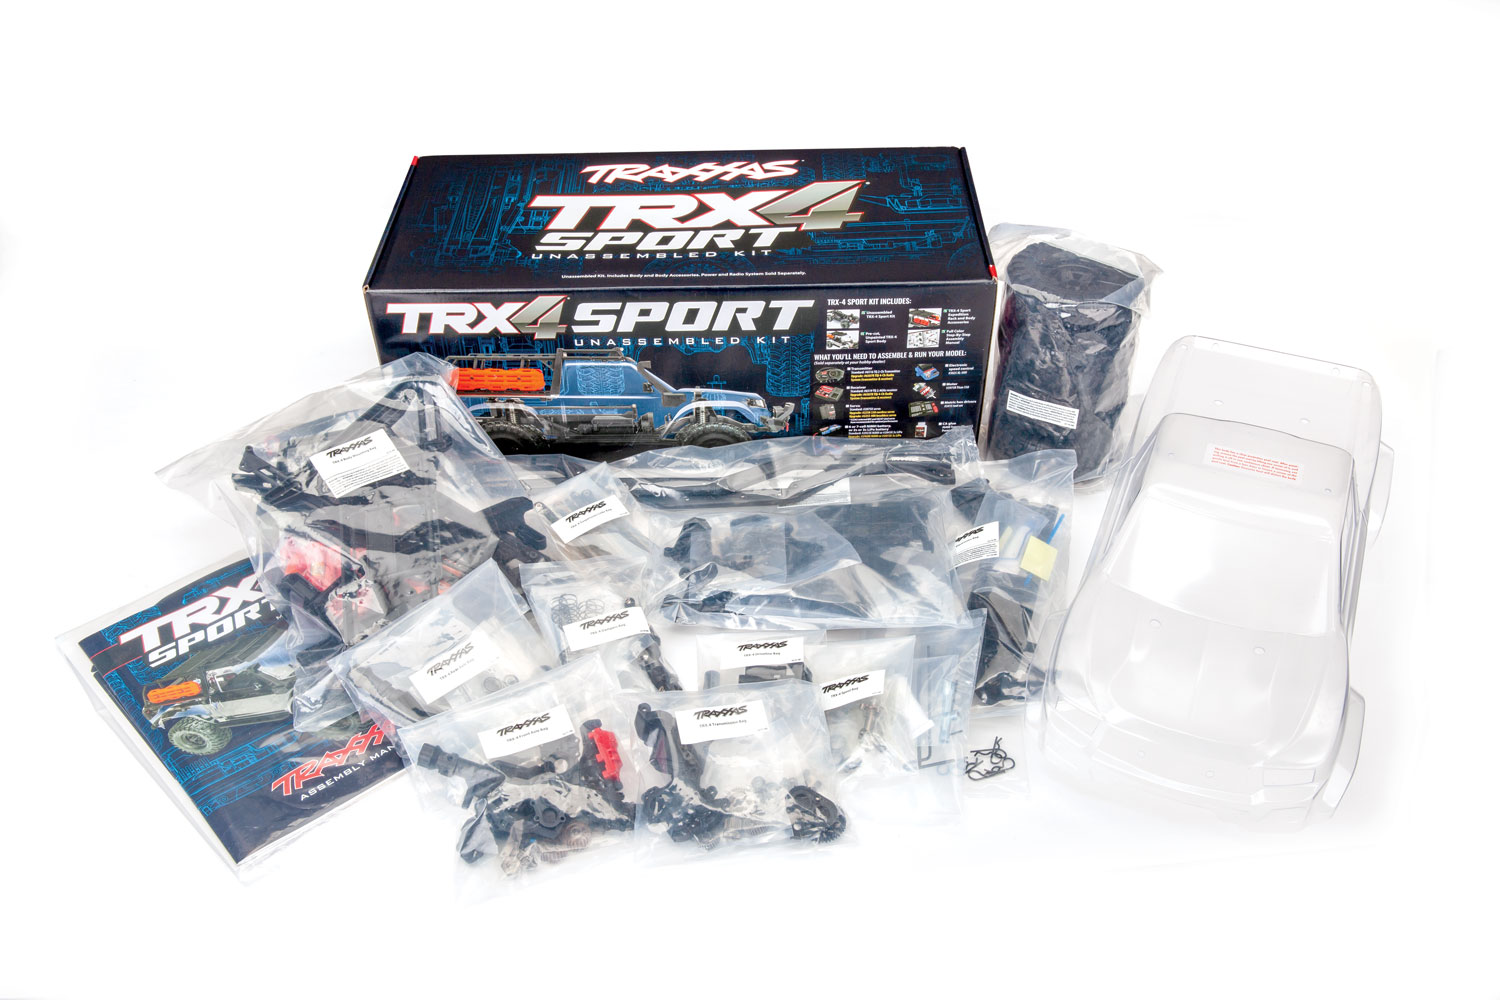 TRX-4 Kit contents